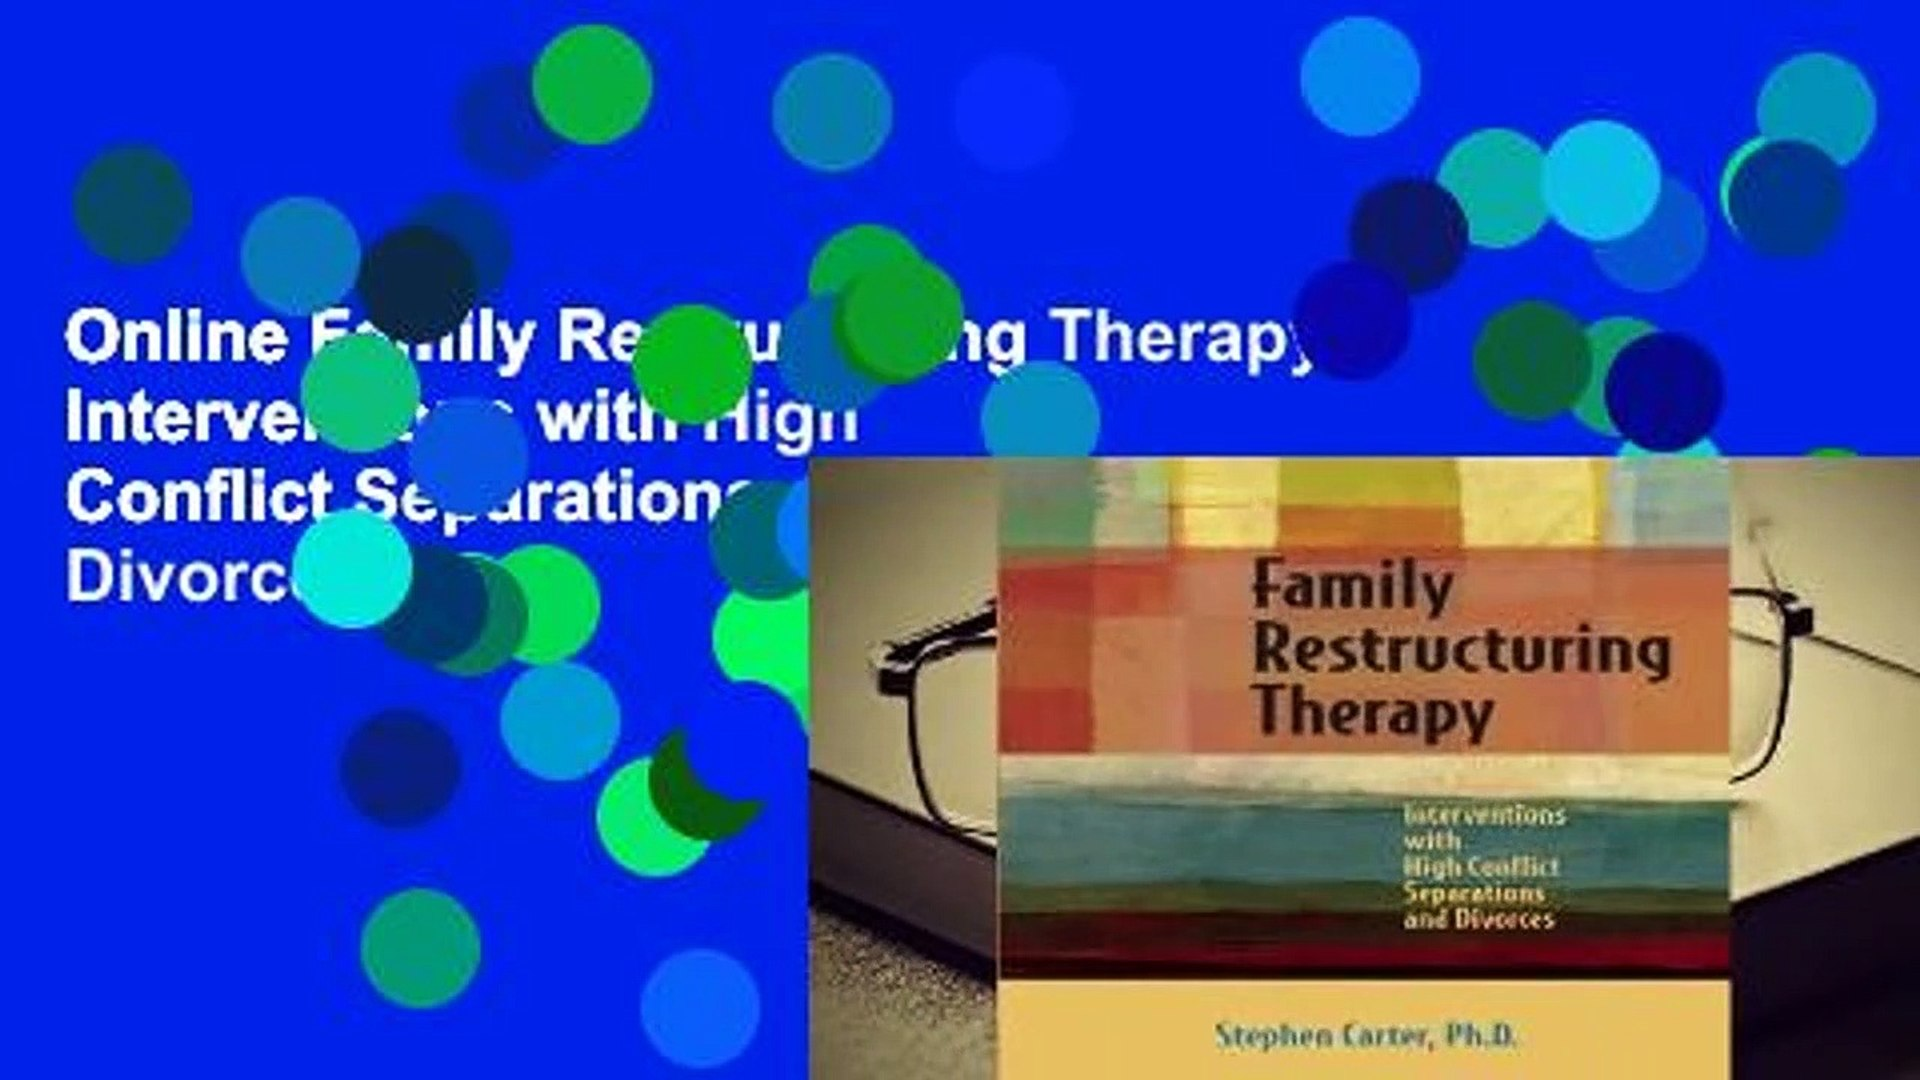 Online Family Restructuring Therapy: Interventions with High Conflict Separations and Divorces